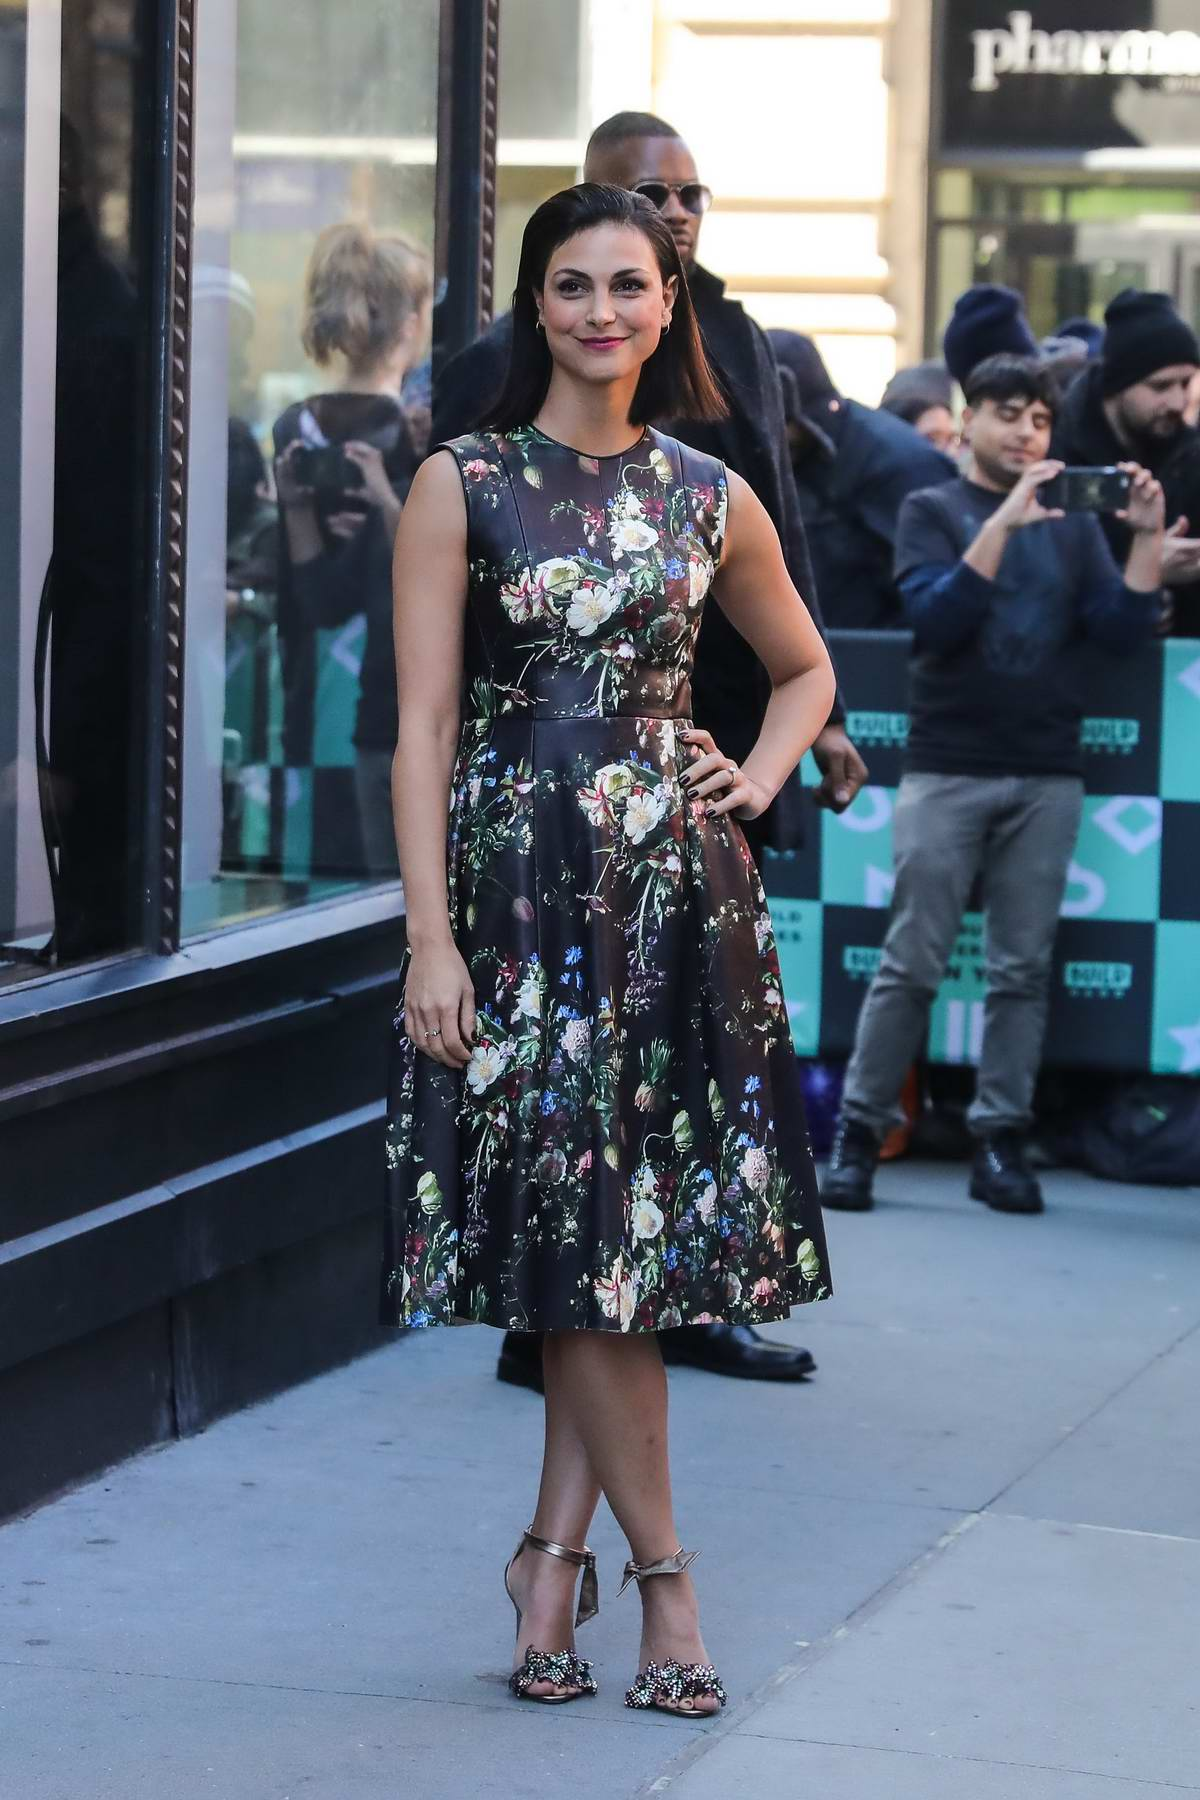 Morena Baccarin pose outside AOL Build Speaker Series in New York City